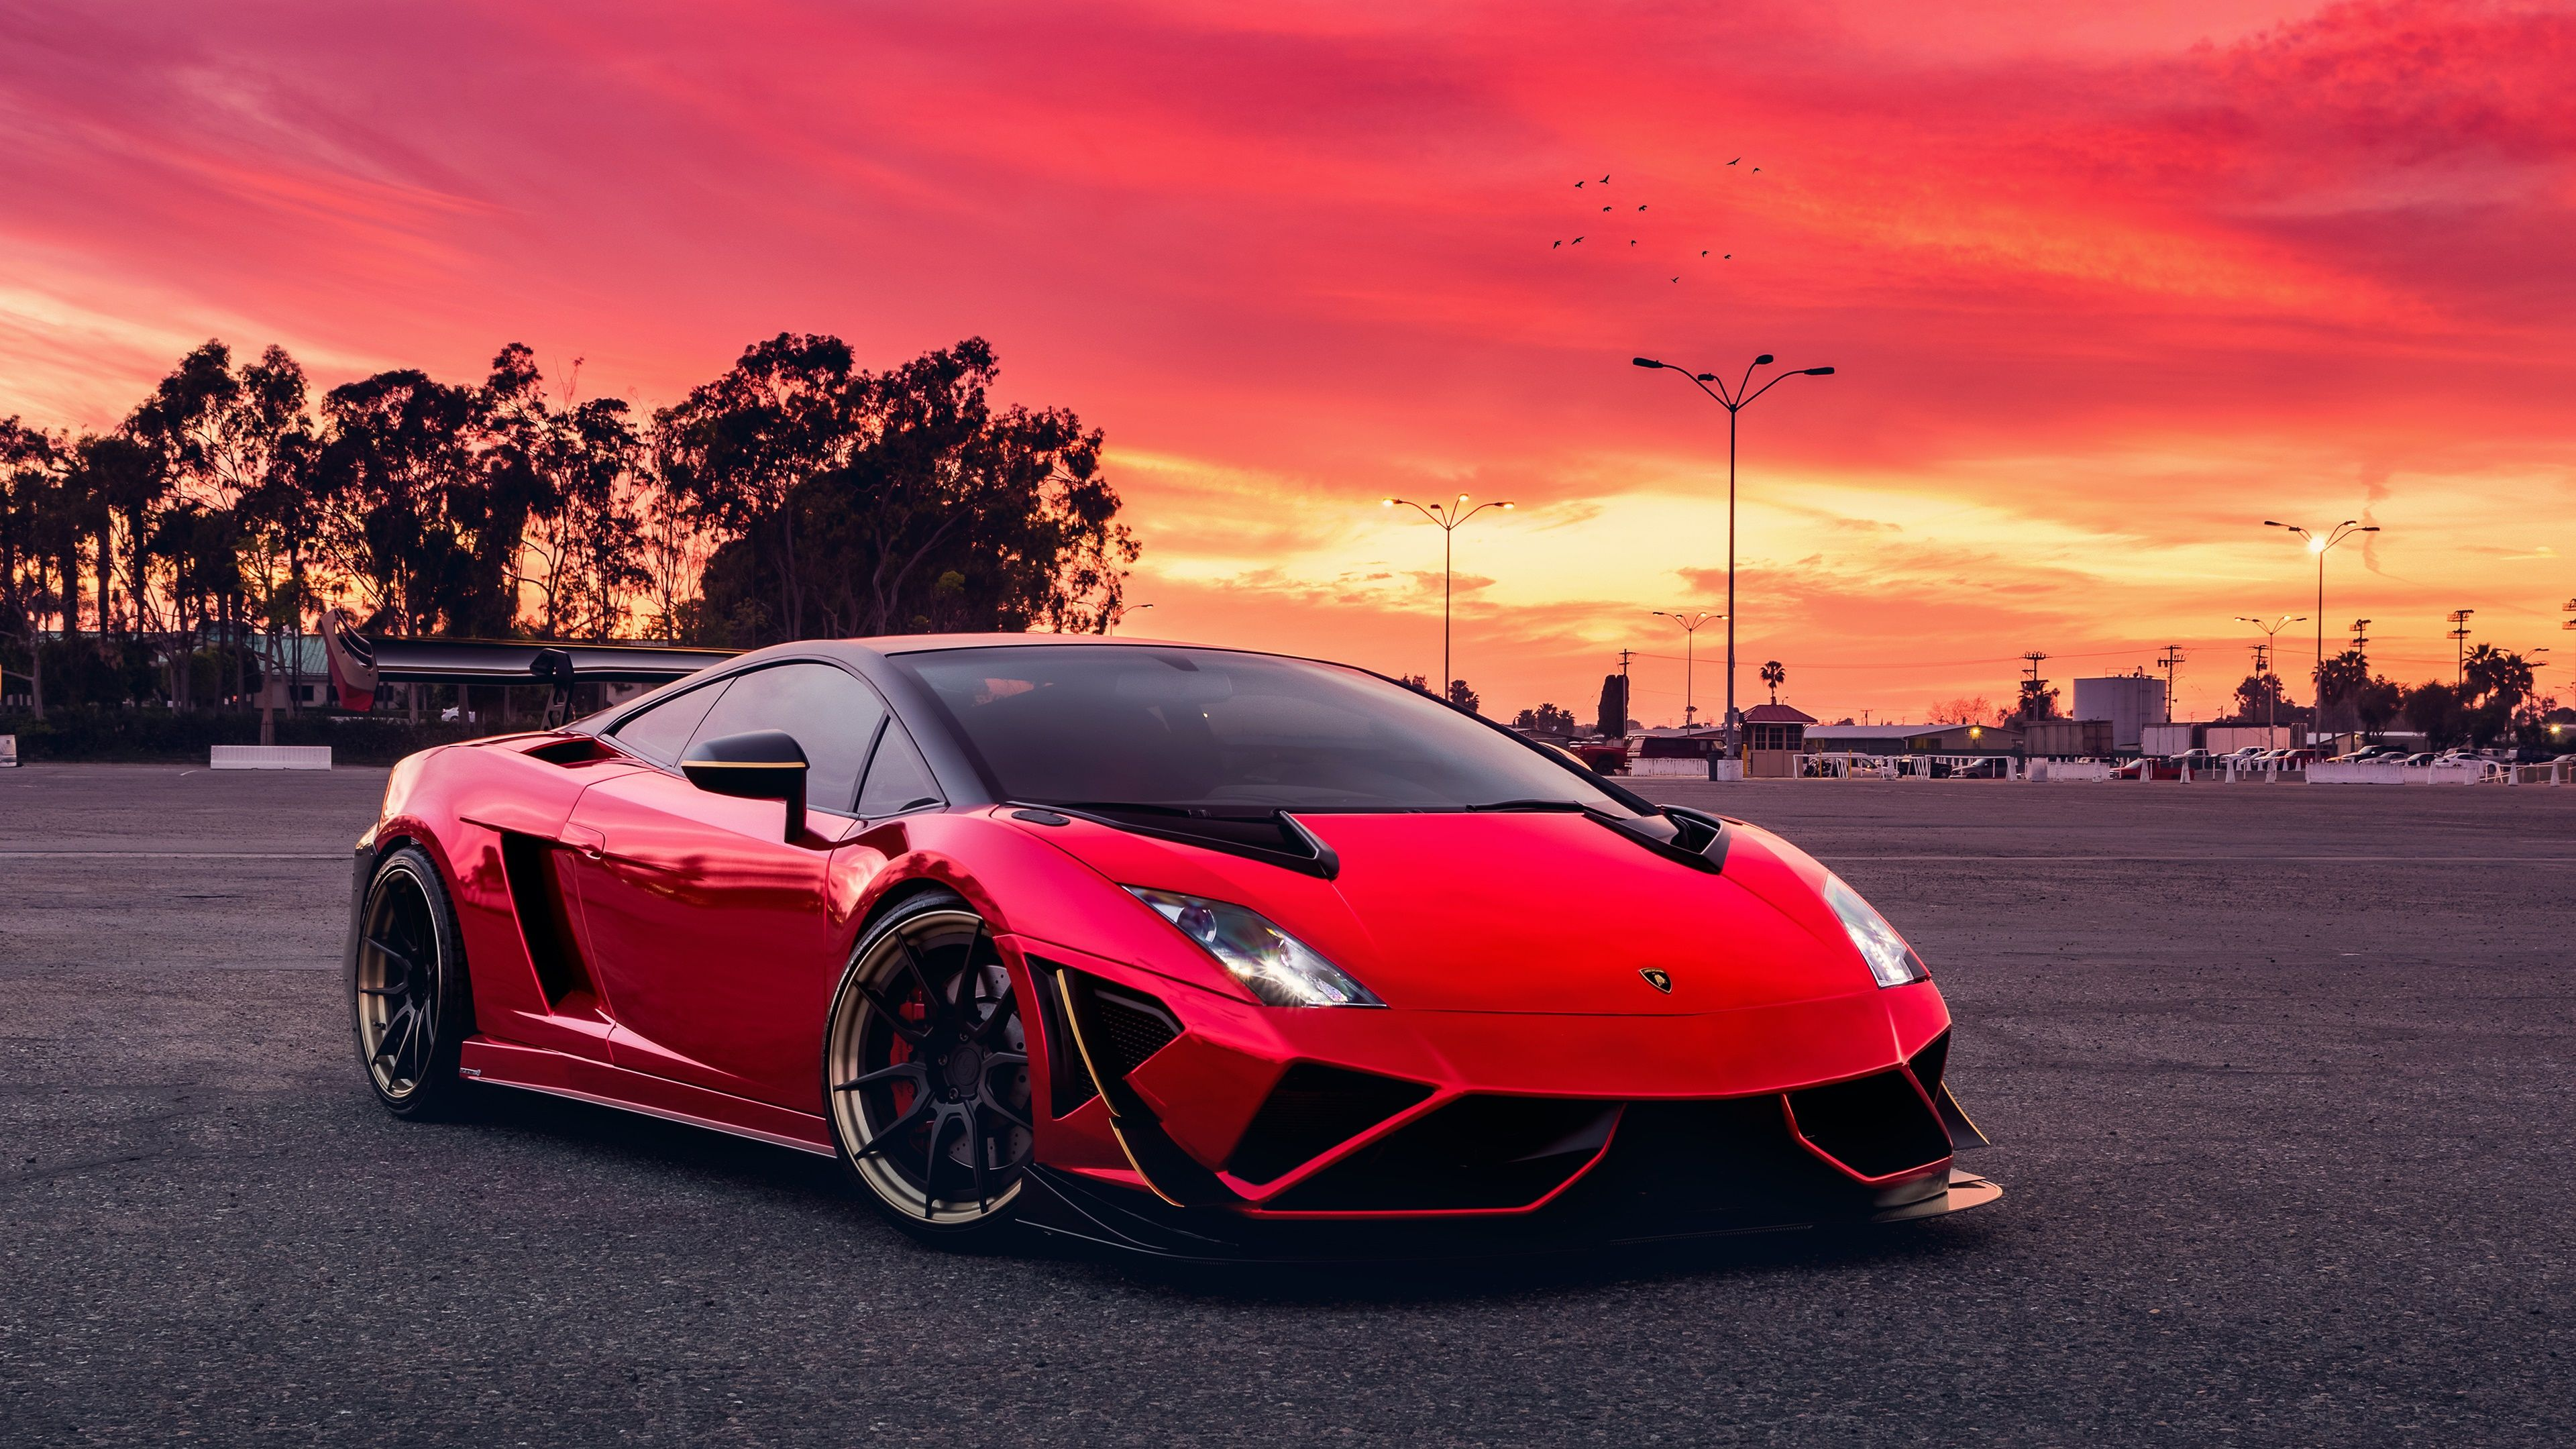 Red Lamborghini Gallardo 4k Wallpaper Lamborghini Wallpapers